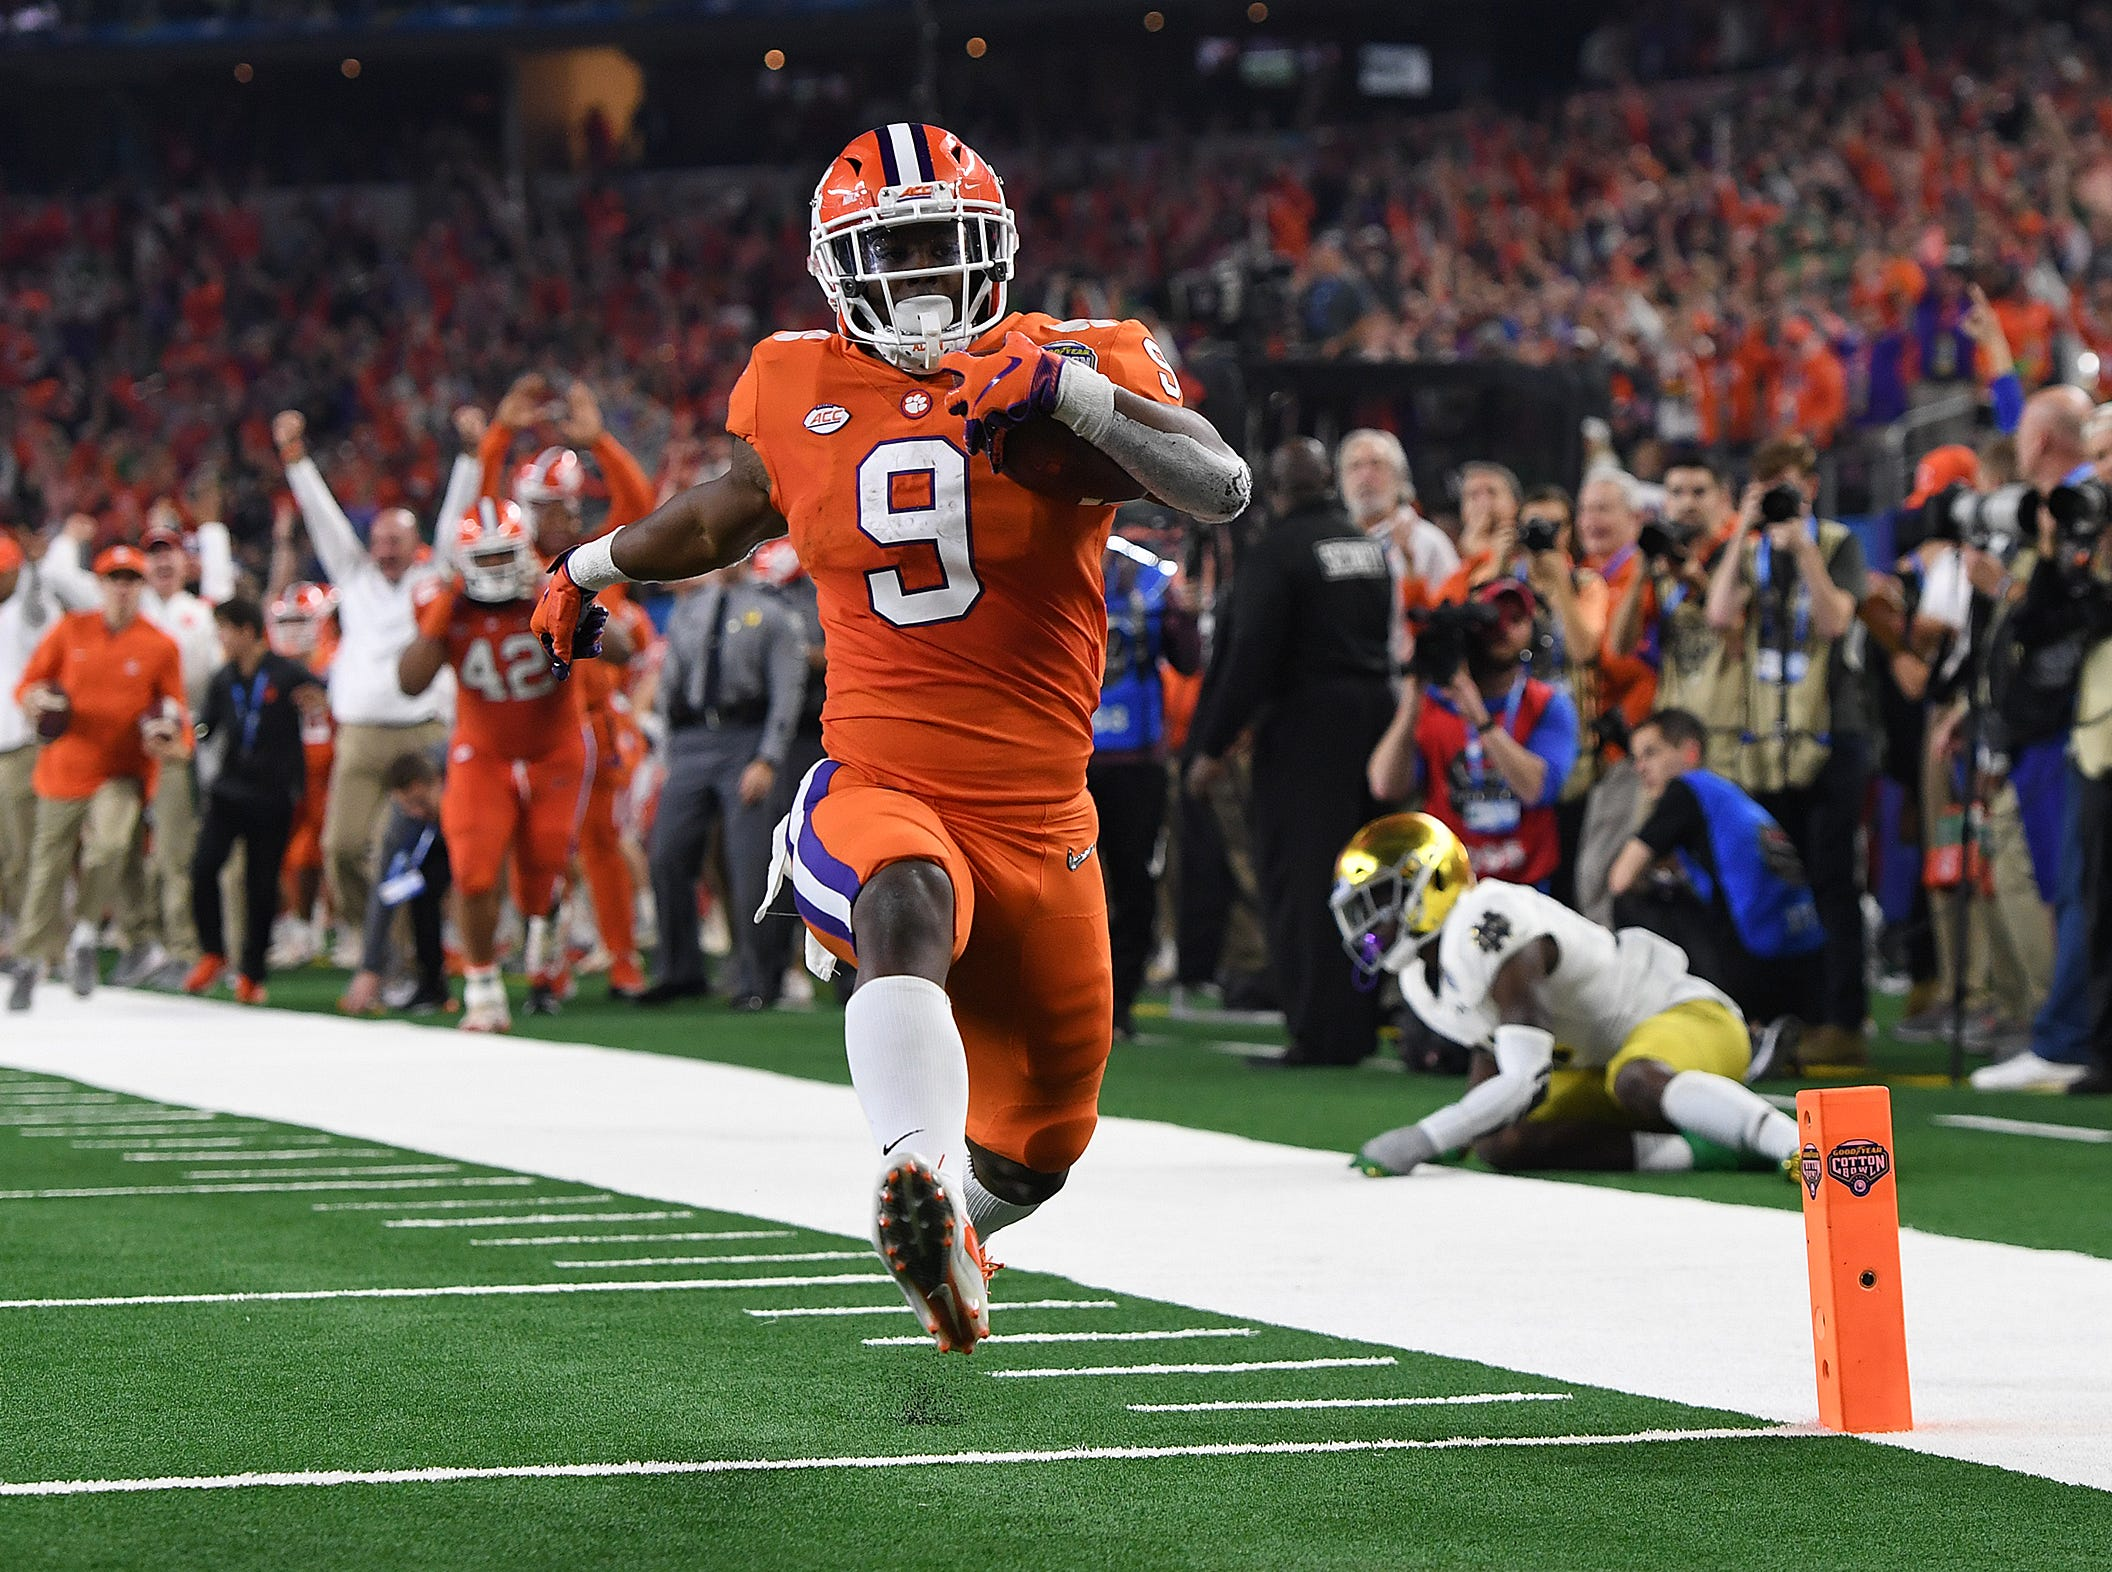 Clemson running back Travis Etienne (9) high steps it into the end zone on a 62 yard TD carry against Notre Dame during the 3rd quarter of the Goodyear Cotton Bowl at AT&T stadium in Arlington, TX Saturday, December 29, 2018.